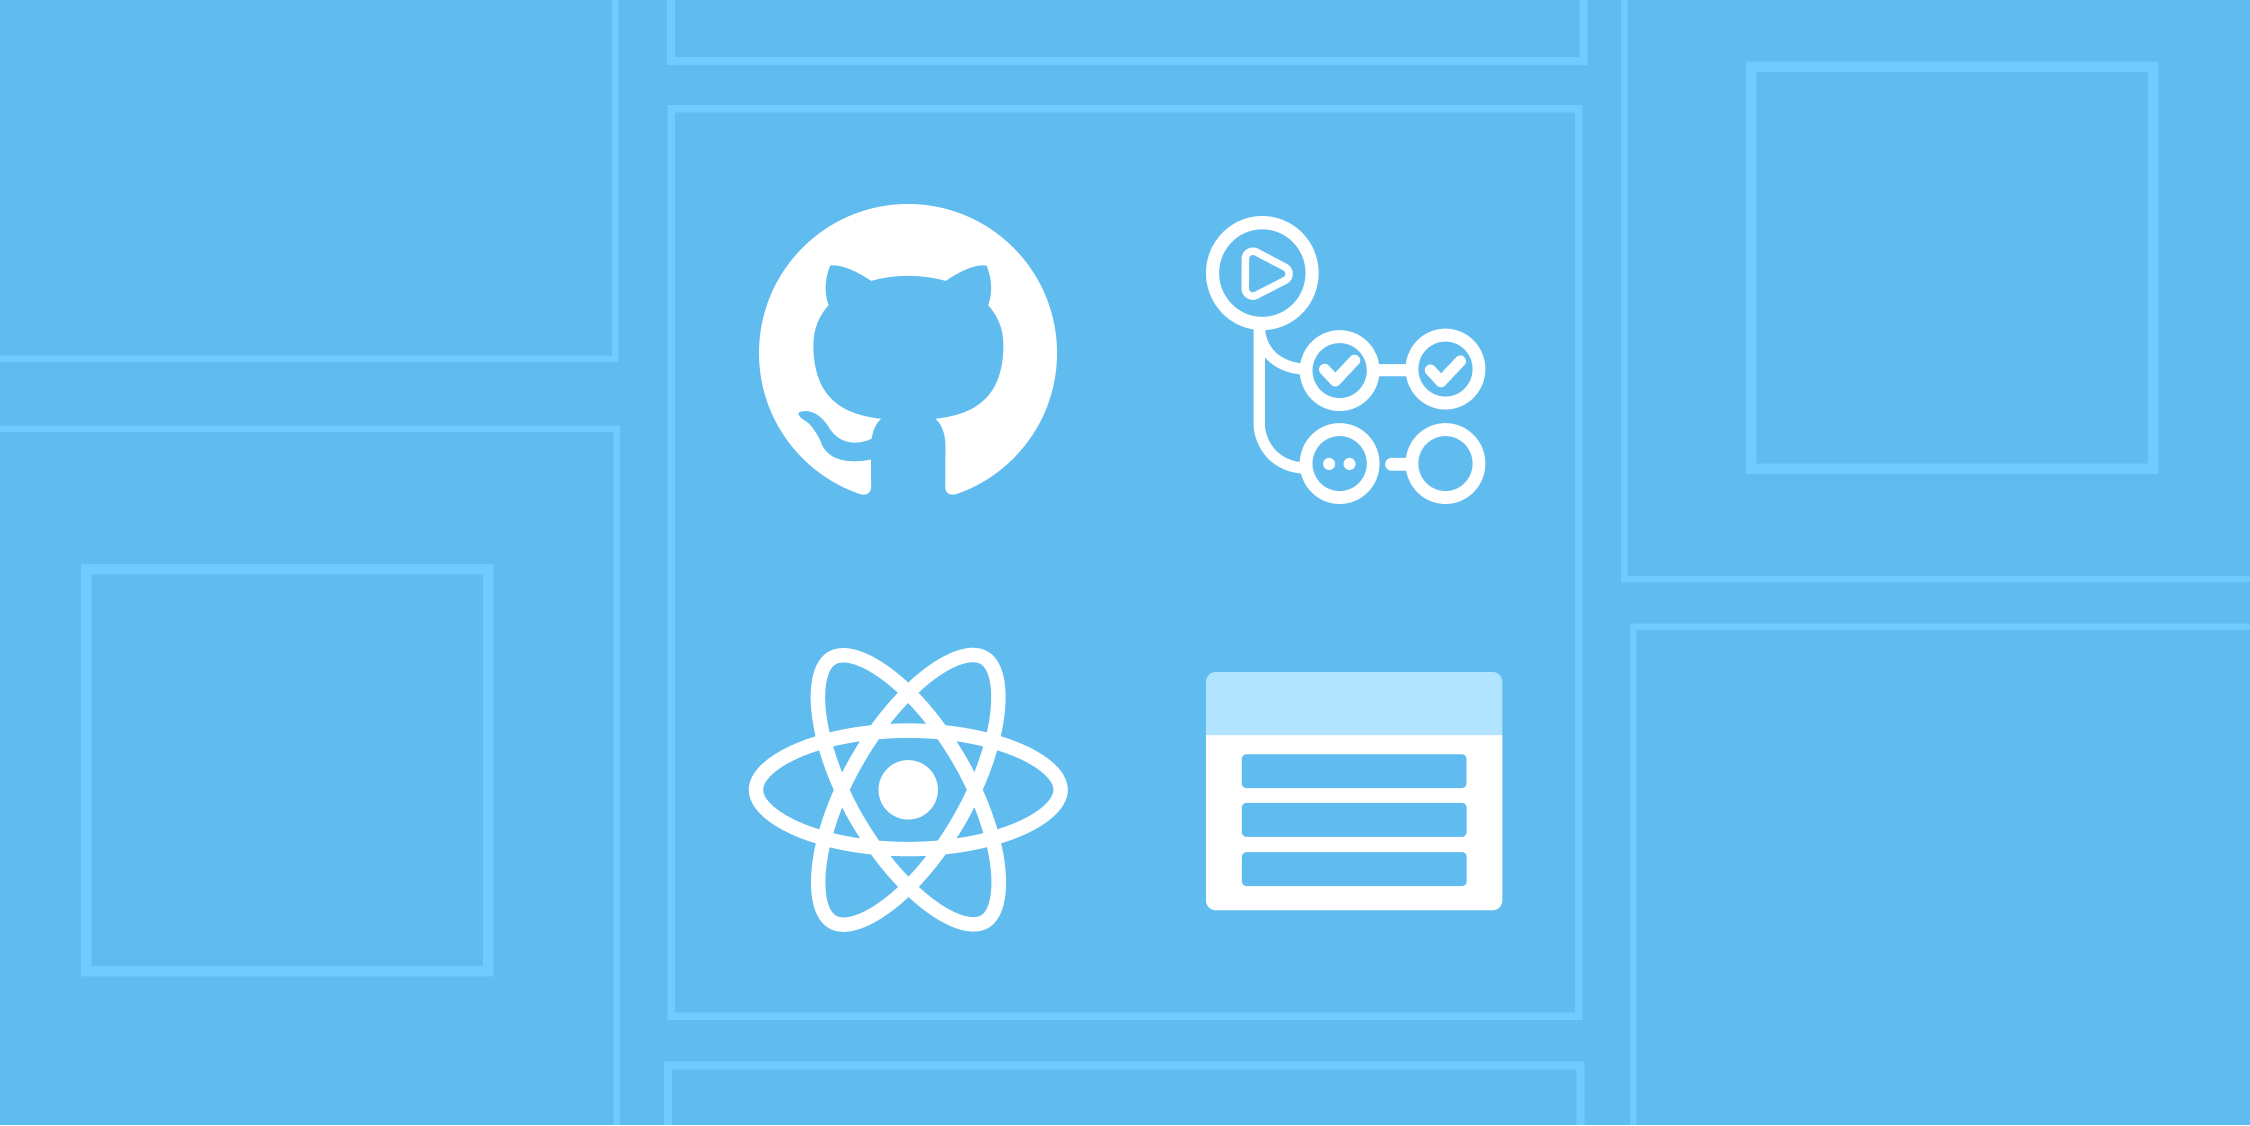 Featured image of this article showing GitHub's logo, GitHub Actions logo, React's logo, and Azure Storage's logo.